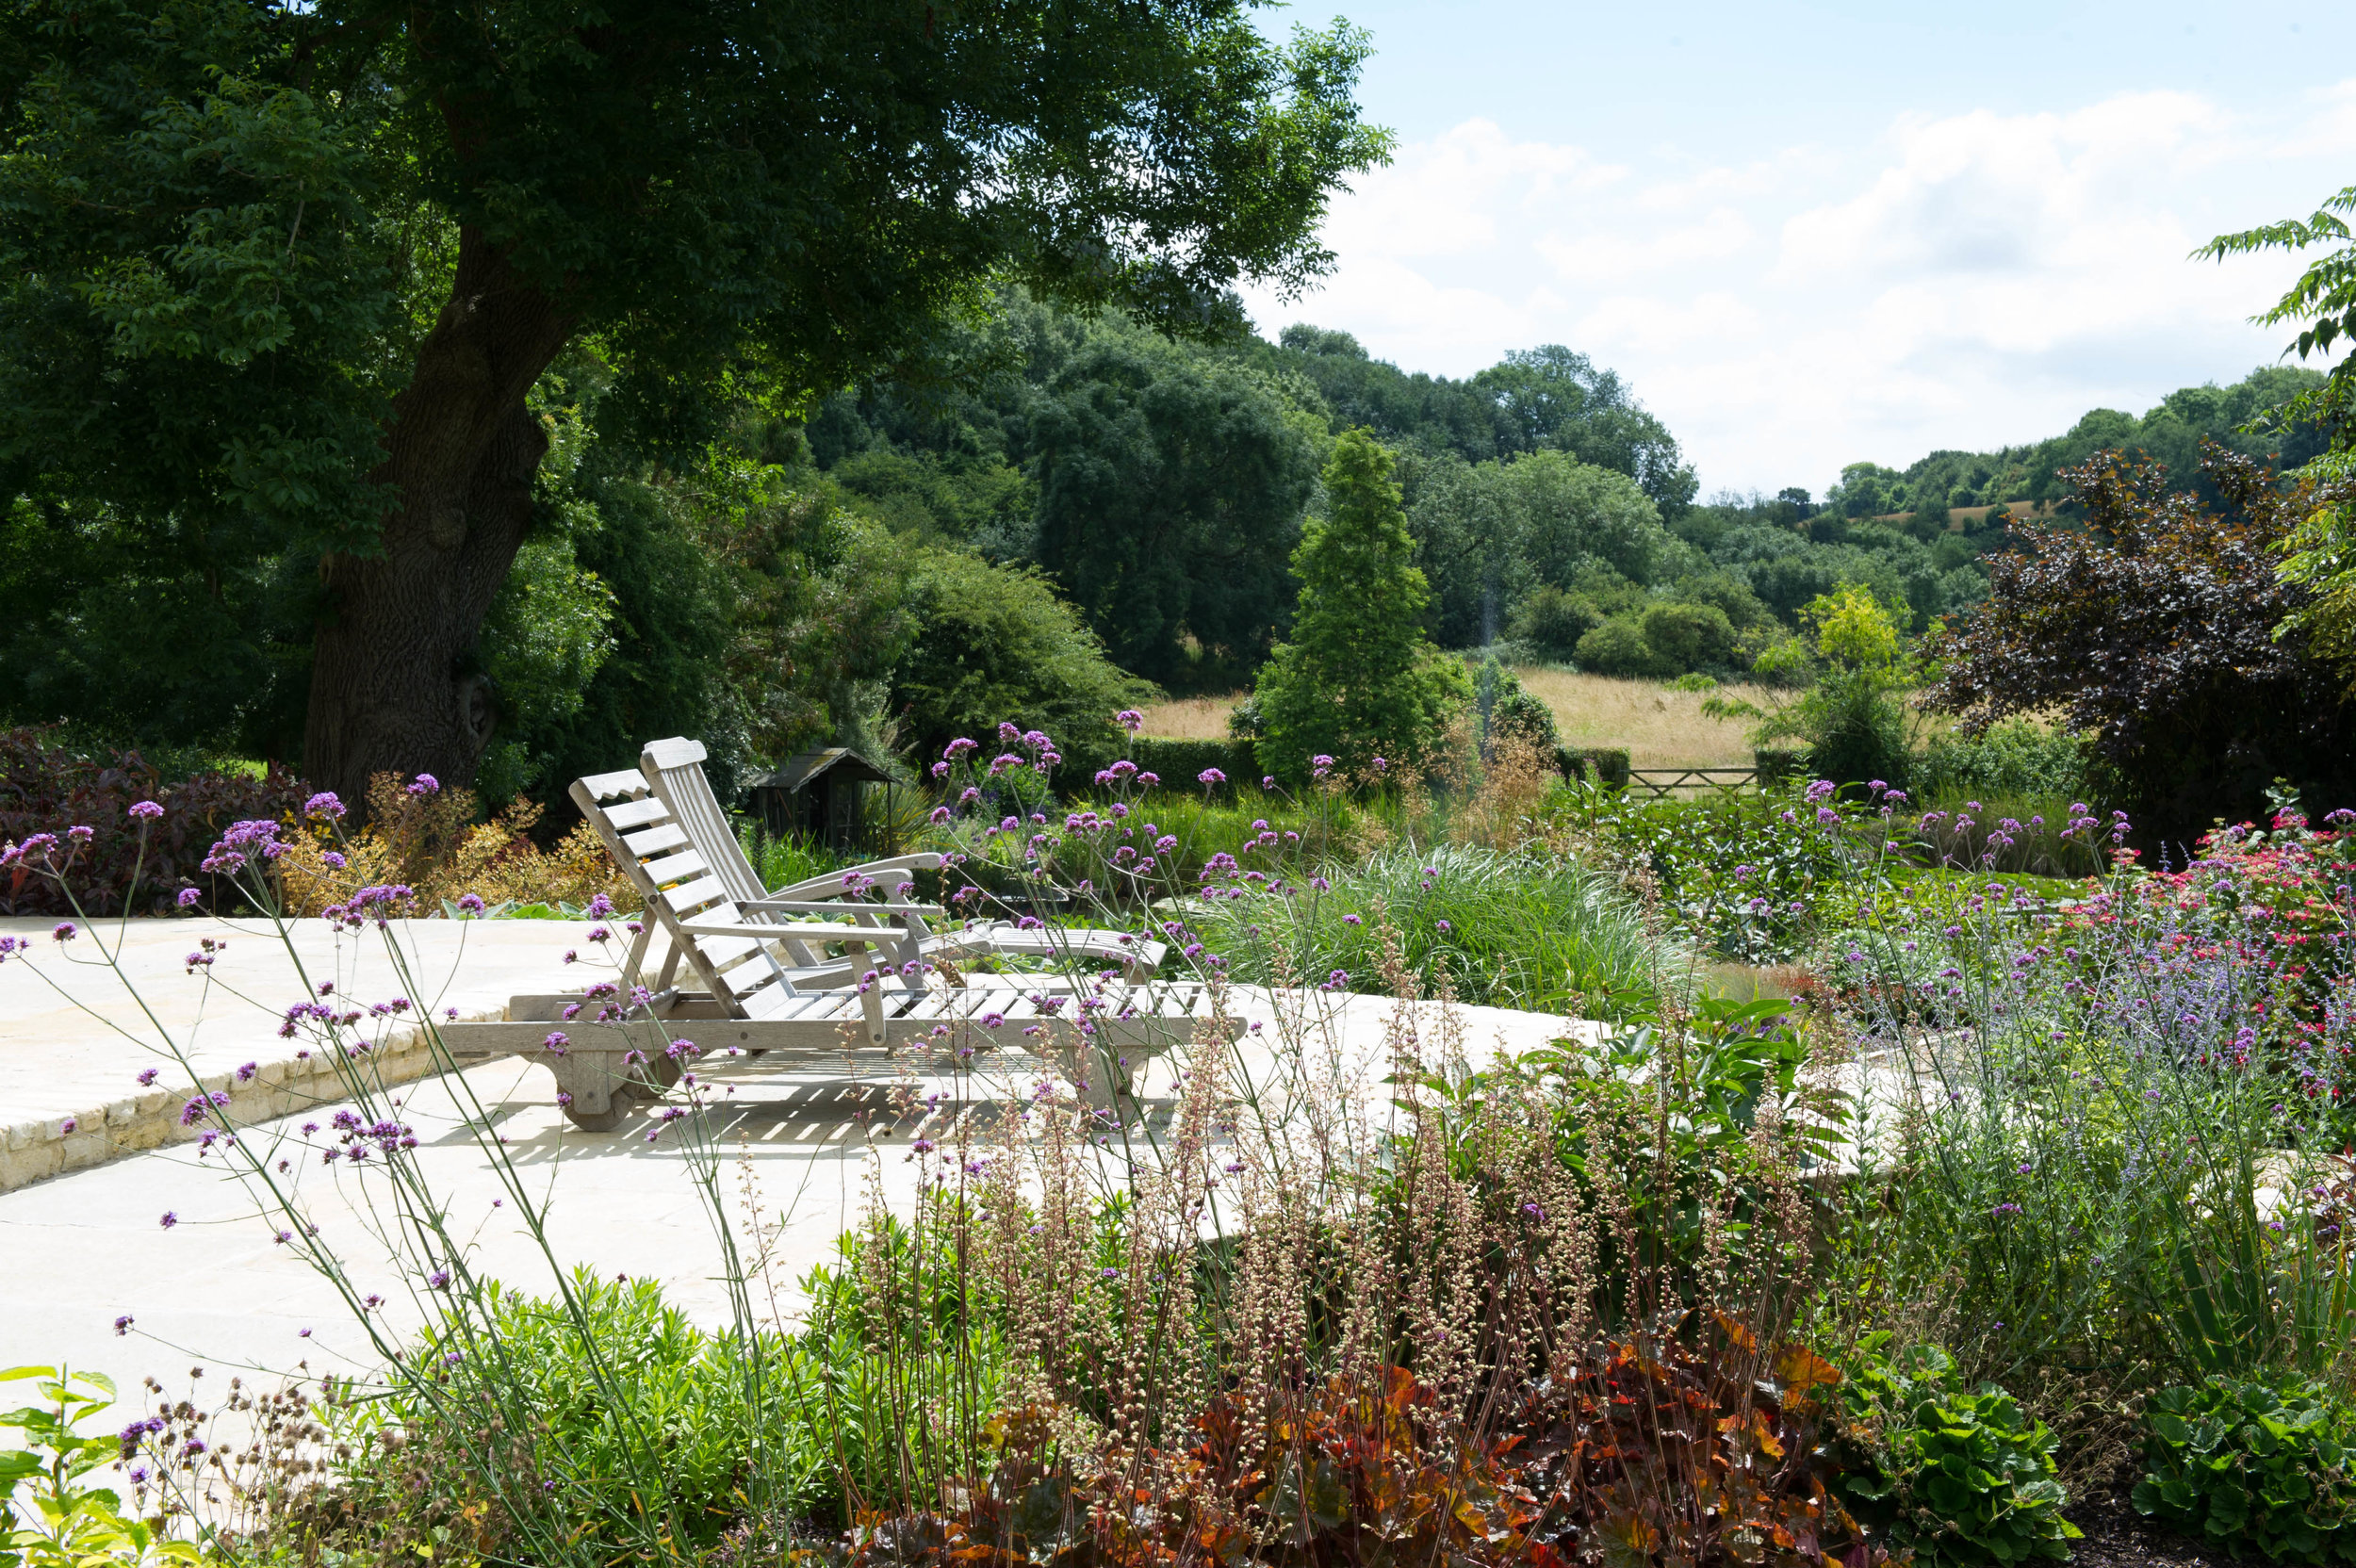 View of the Cotswold landscape from deck with timber sun loungers.